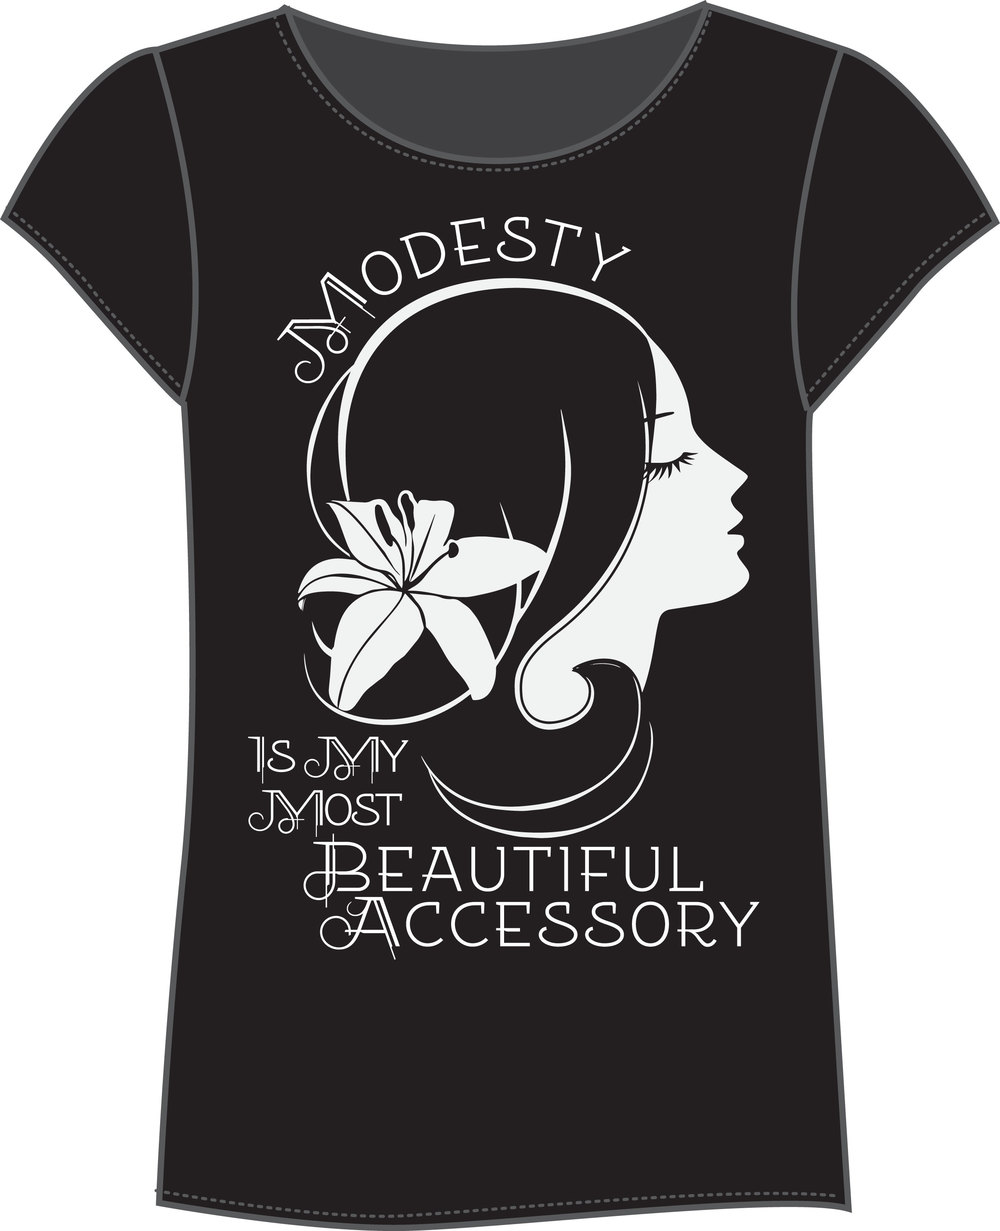 Eternal Princess. Modesty Tee.